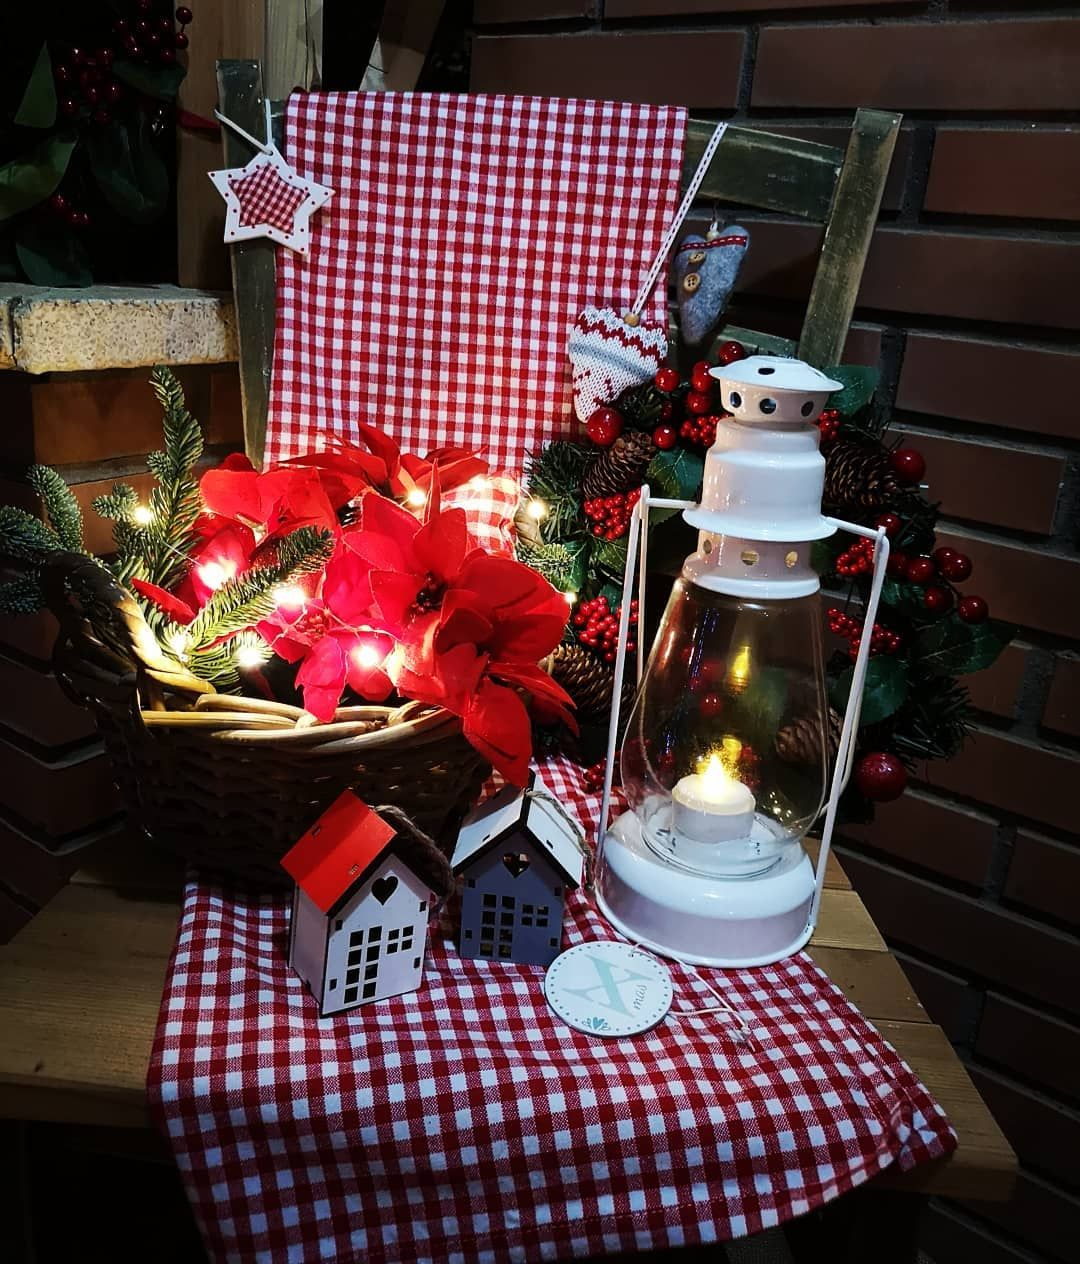 Christmas corner!!! -      Christmas corner!!!✨❤️✨❤️✨❤️✨ #christmasdecor #christmas #christmastime #christmasmagic #christmastree #christmaslights #seasonaldecor #instachristmas #wooddecorations #christmaslovers #wood #xmas #xmasdecor #xmastime #xmastree #joy#santa #hohoho #navidad #rustico#madera #decoracionnavideña.     The Effective Pictures We Offer You About handmade Wood Decor      A quality picture can tell you many things. You can find the most beautiful pictures that can be presented t